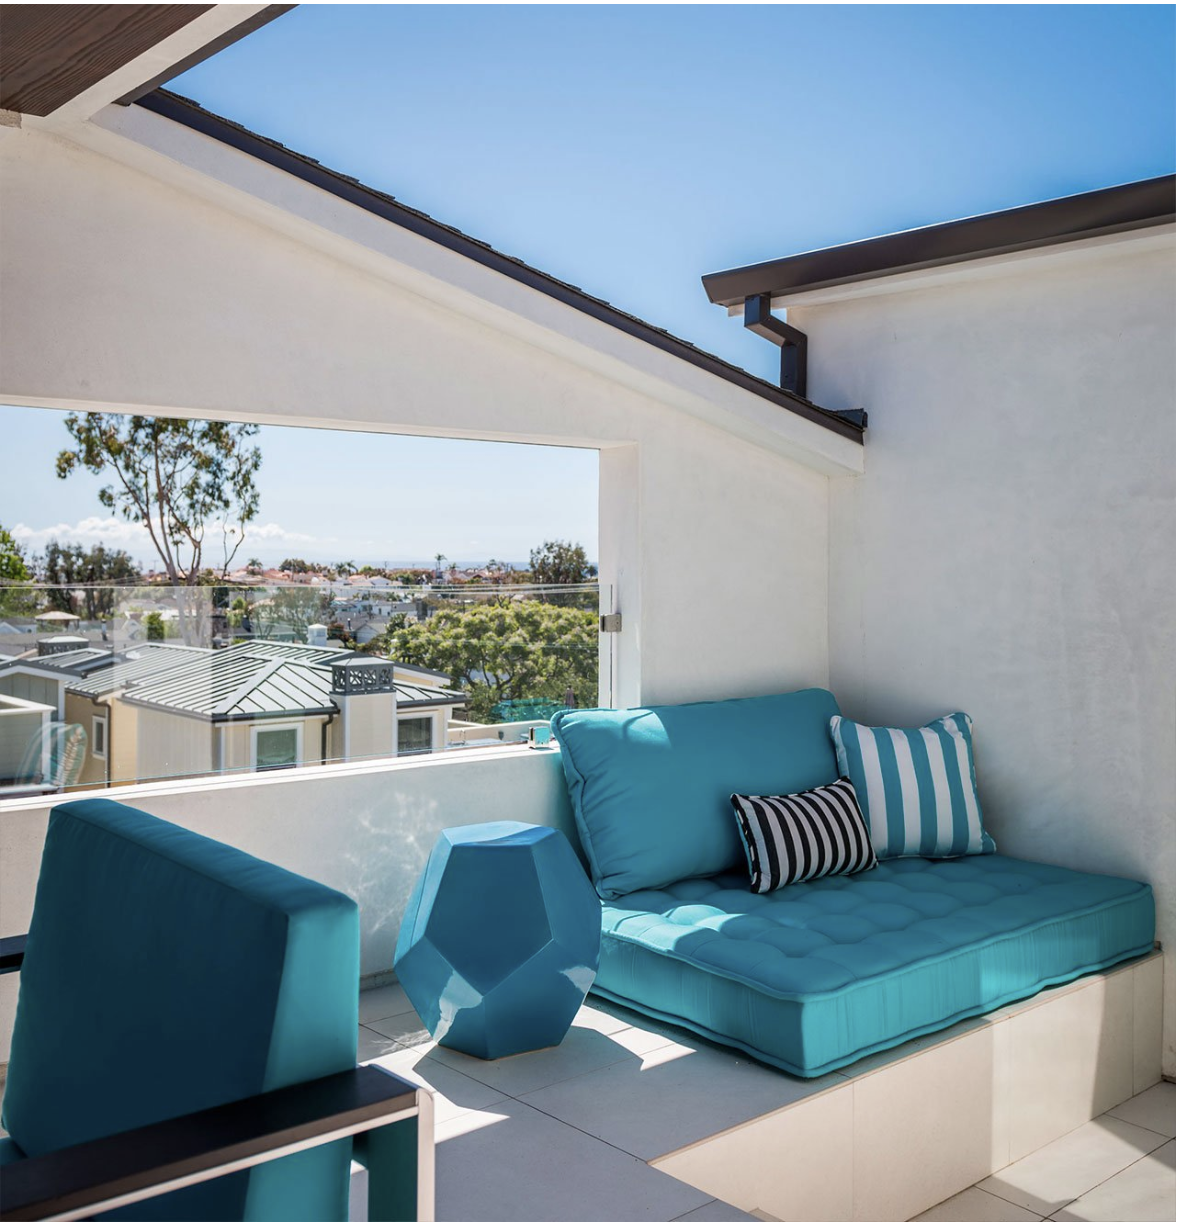 Interior designer  Rachel Horn  is a frequent specifier of Seasonal Living's indoor outdoor furniture.Here, she used the GEO Table in turquoise blue.